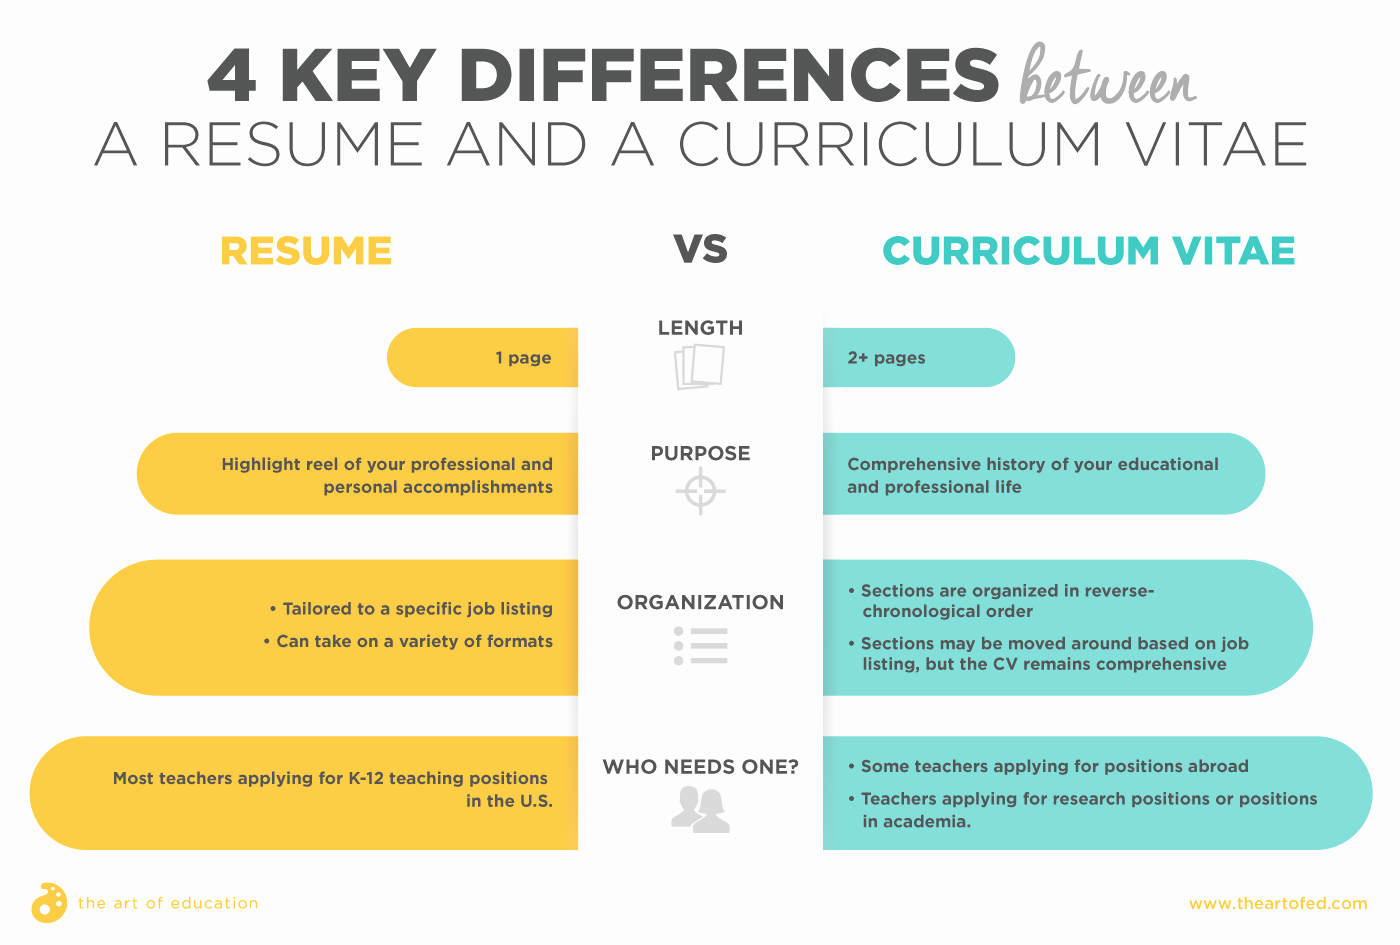 Resume Vs Curriculum Vitae An Art Teacher's Guide the